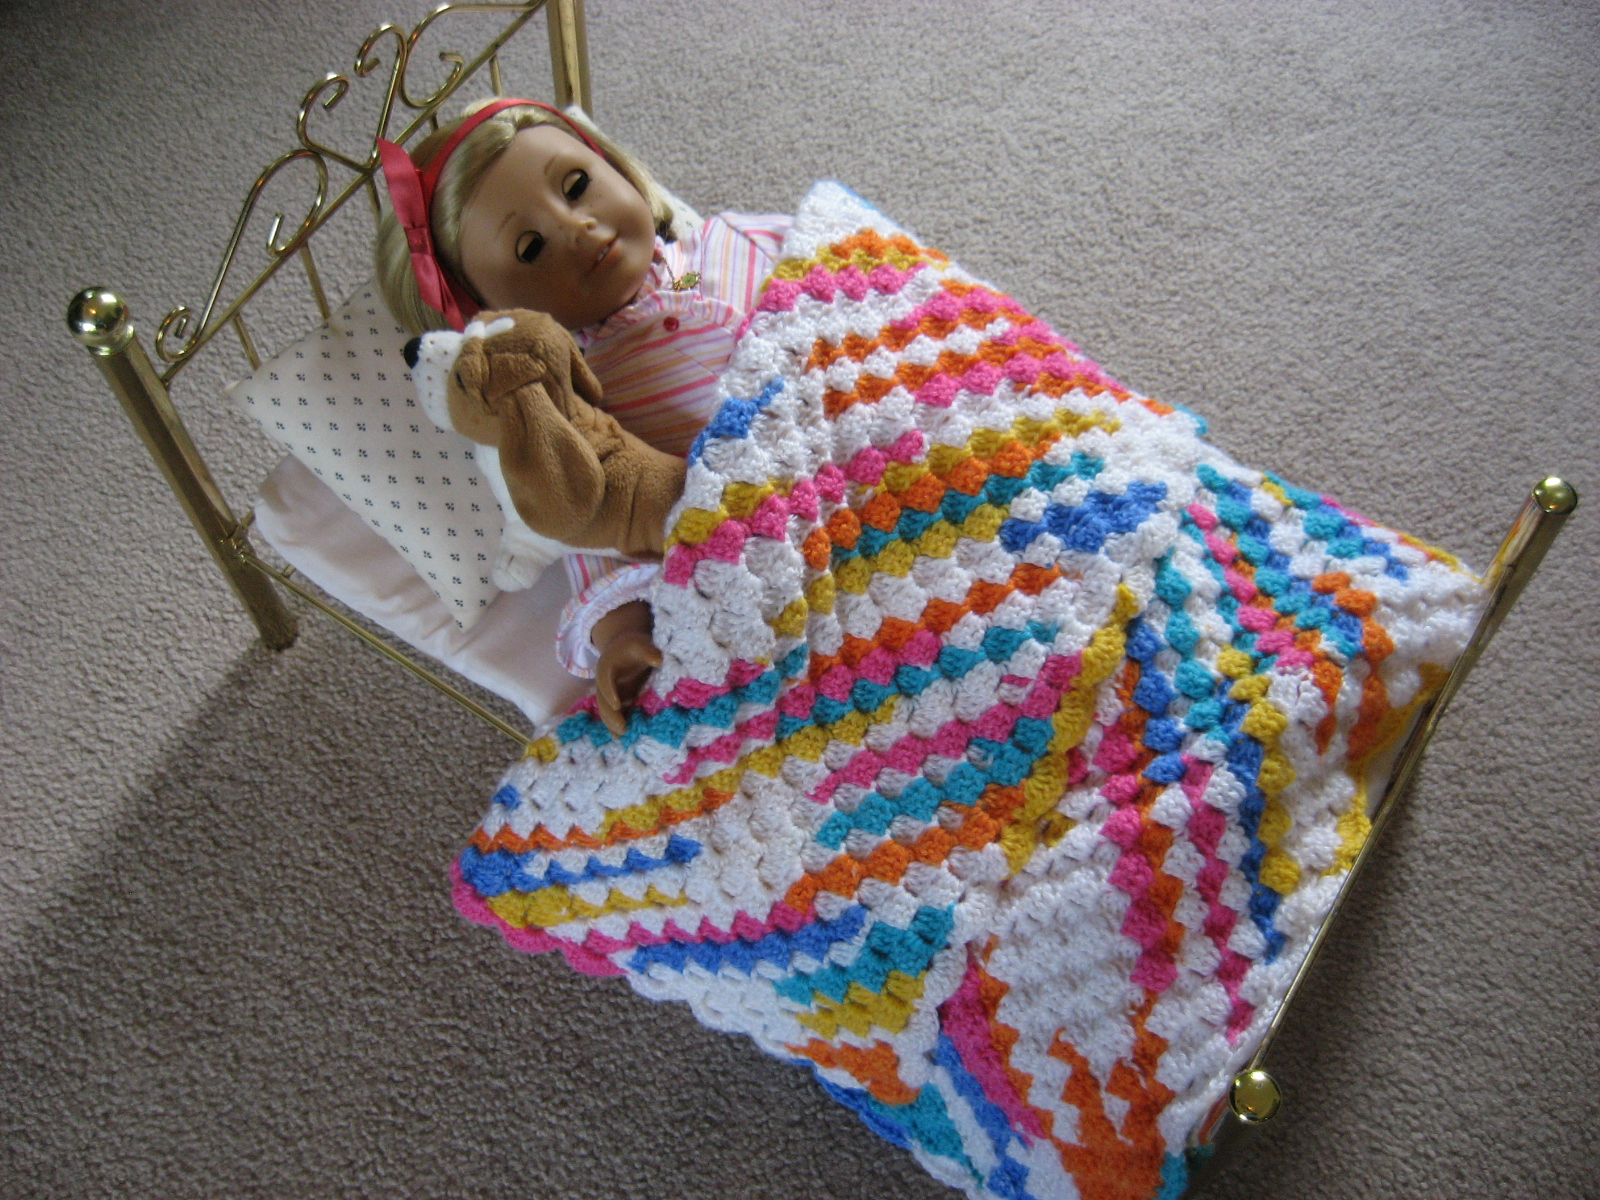 Hooked On Needles More Summertime Crocheting A Colorful Baby Doll